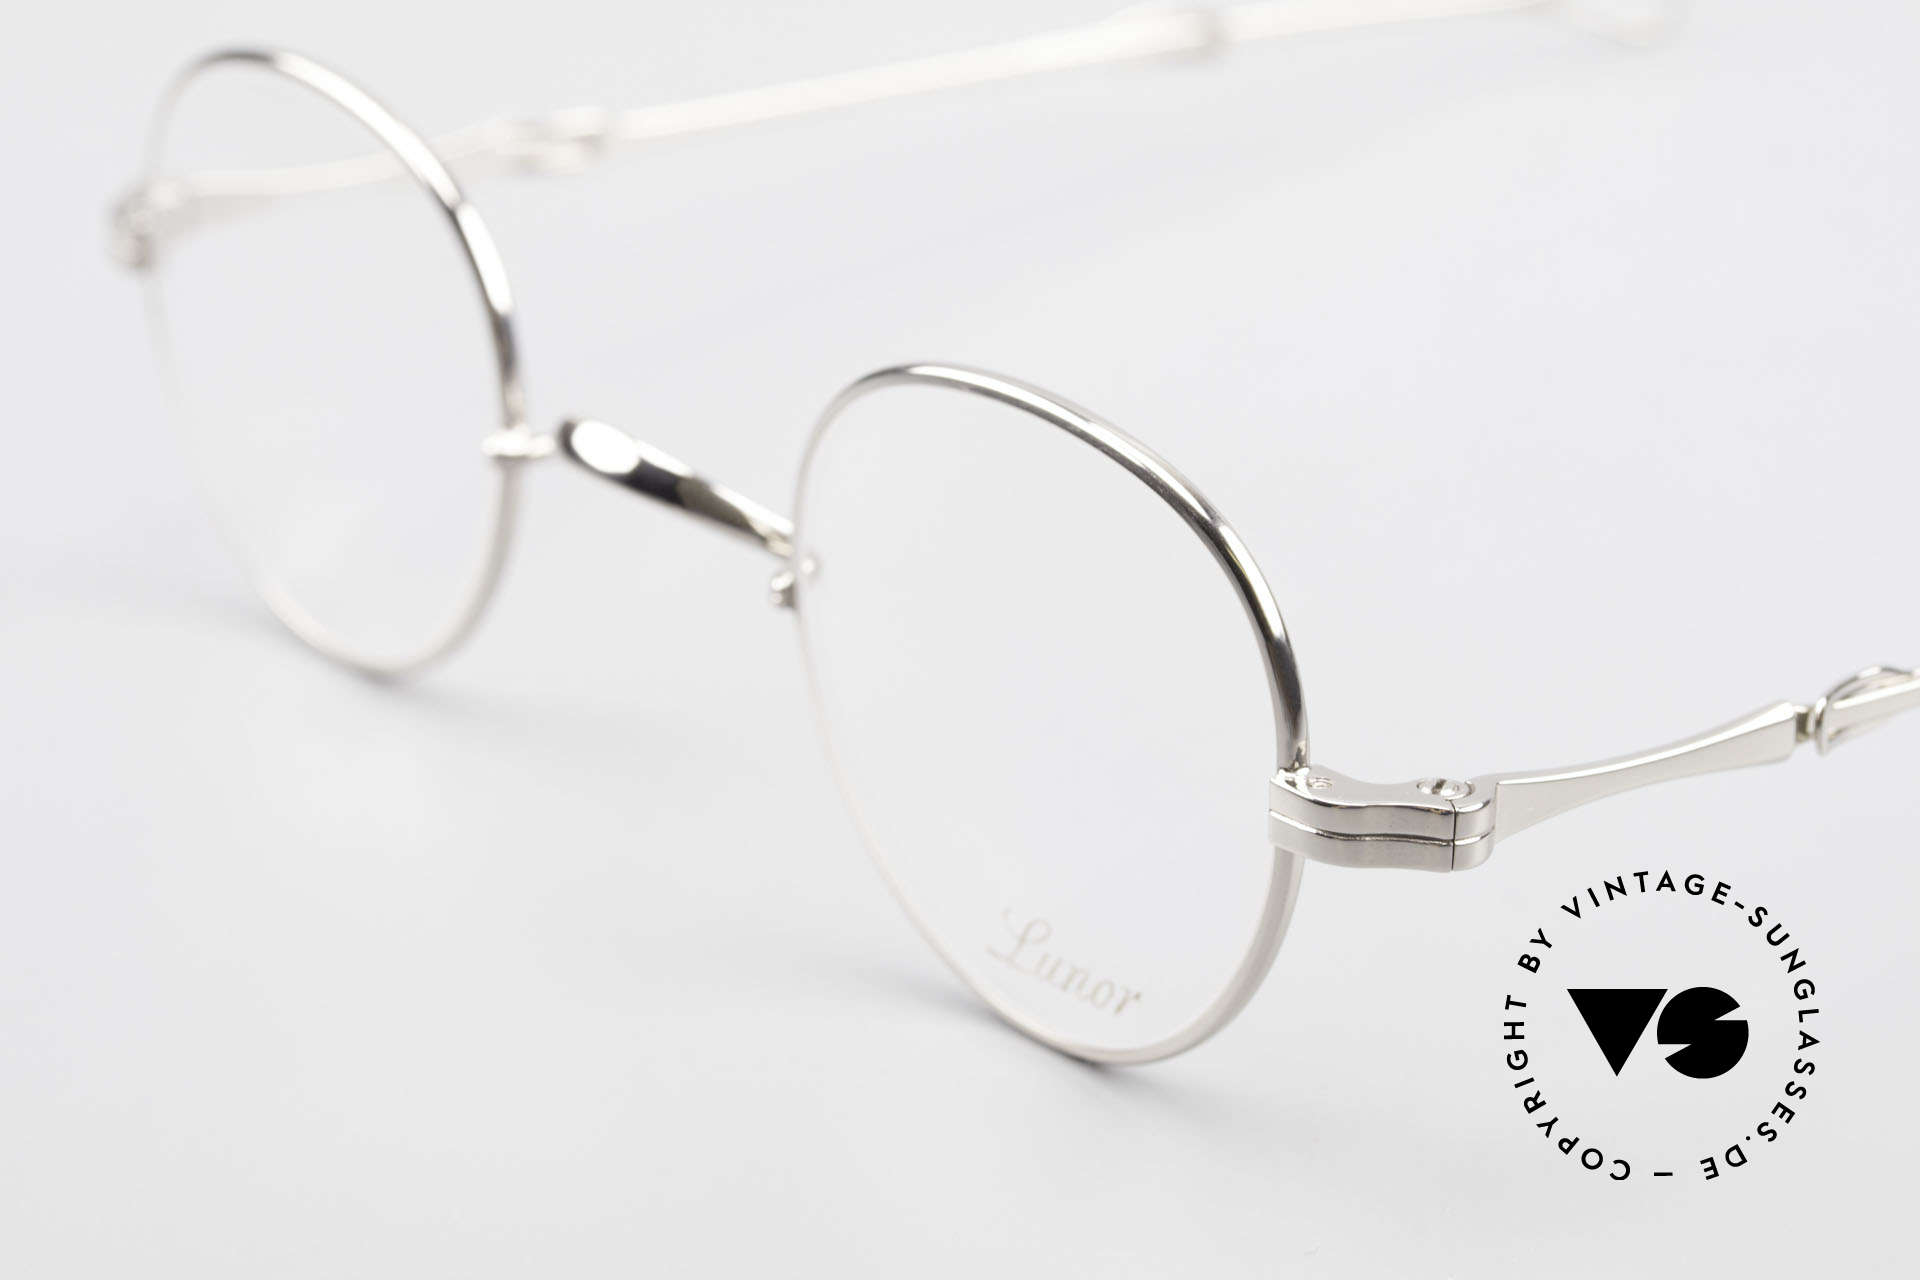 Lunor I 15 Telescopic Extendable Slide Temples, as well as for the brilliant telescopic / extendable arms, Made for Men and Women